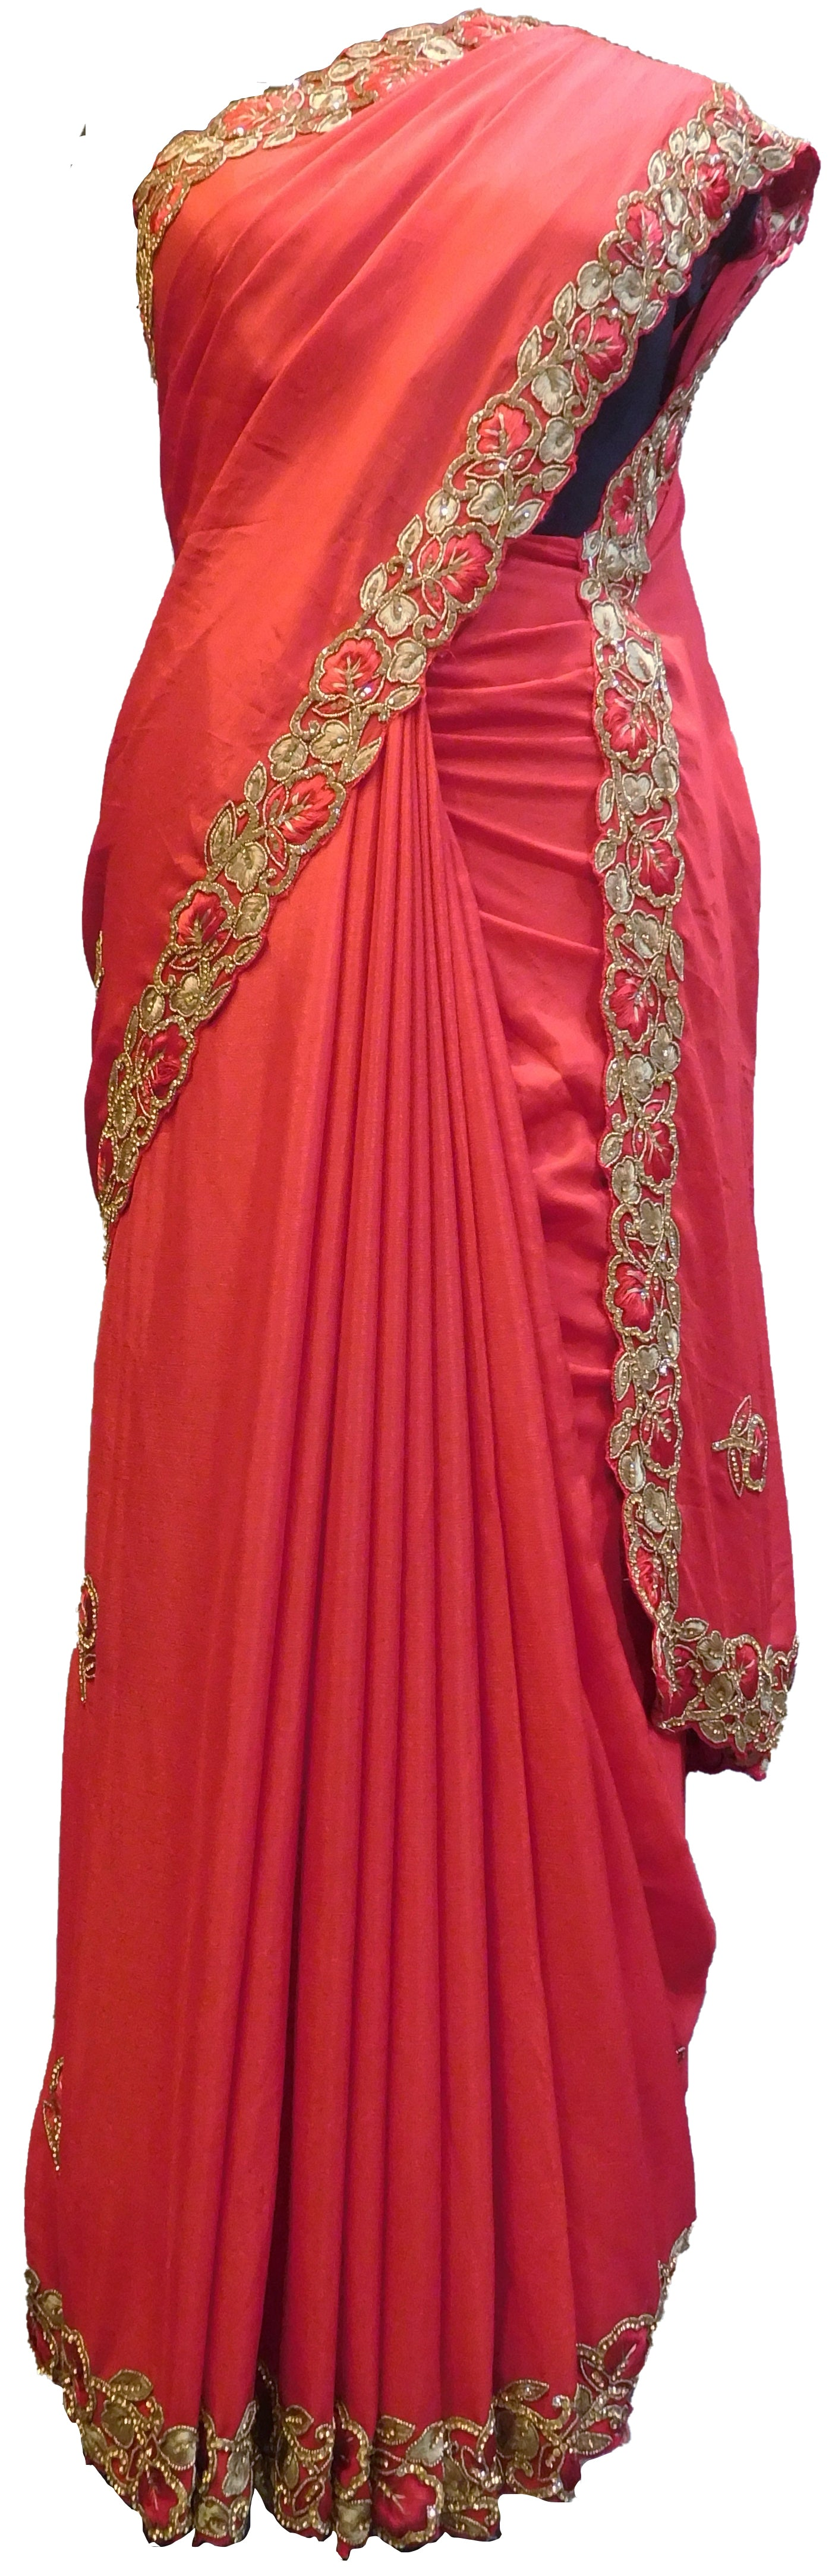 SMSAREE Red Designer Wedding Partywear Crepe (Chinon) Stone Beads & Thread Hand Embroidery Work Bridal Saree Sari With Blouse Piece E503